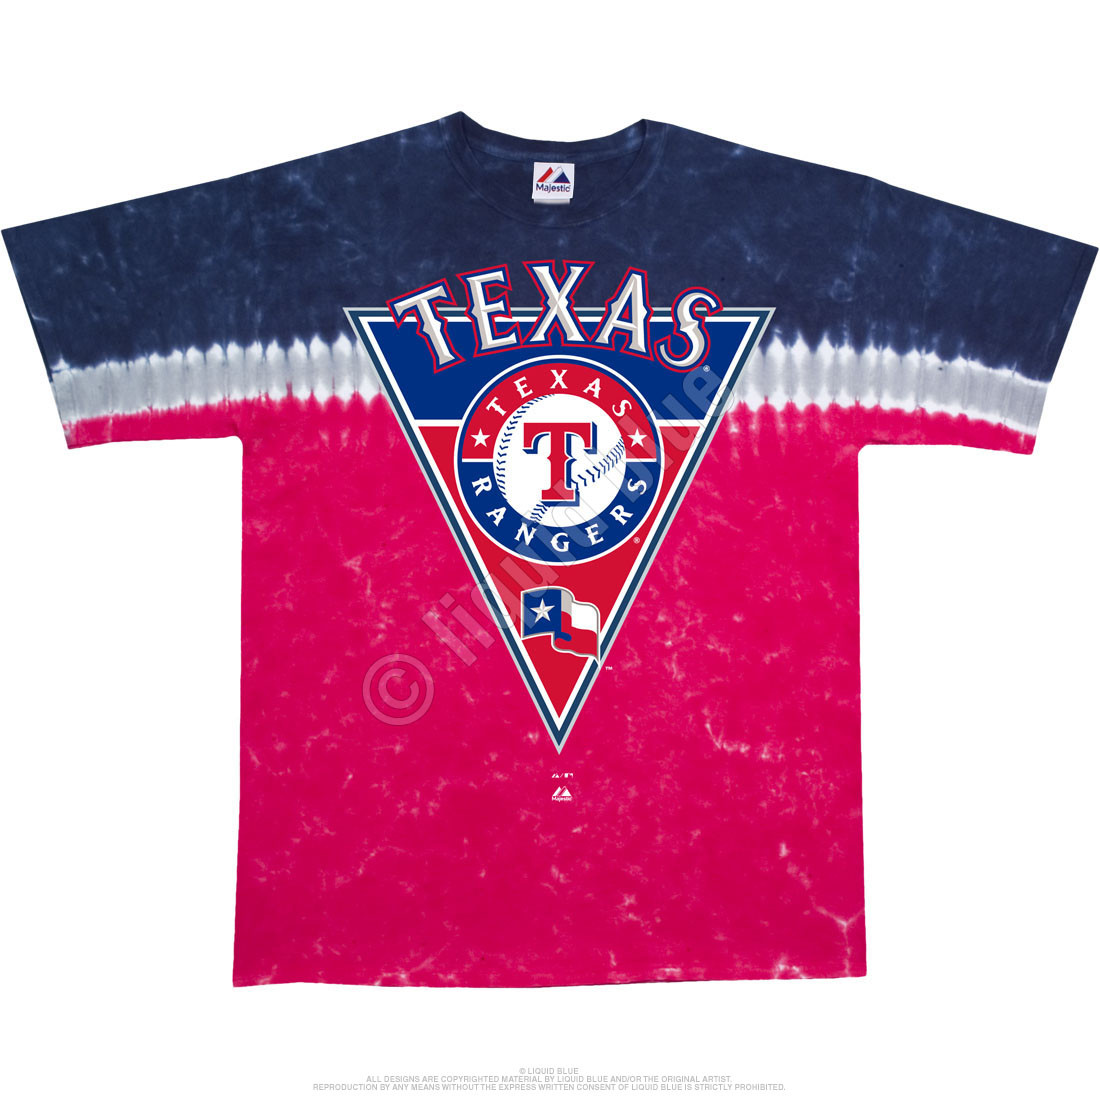 Texas Rangers Pennant Tie-Dye T-Shirt - Clearance 30% OFF